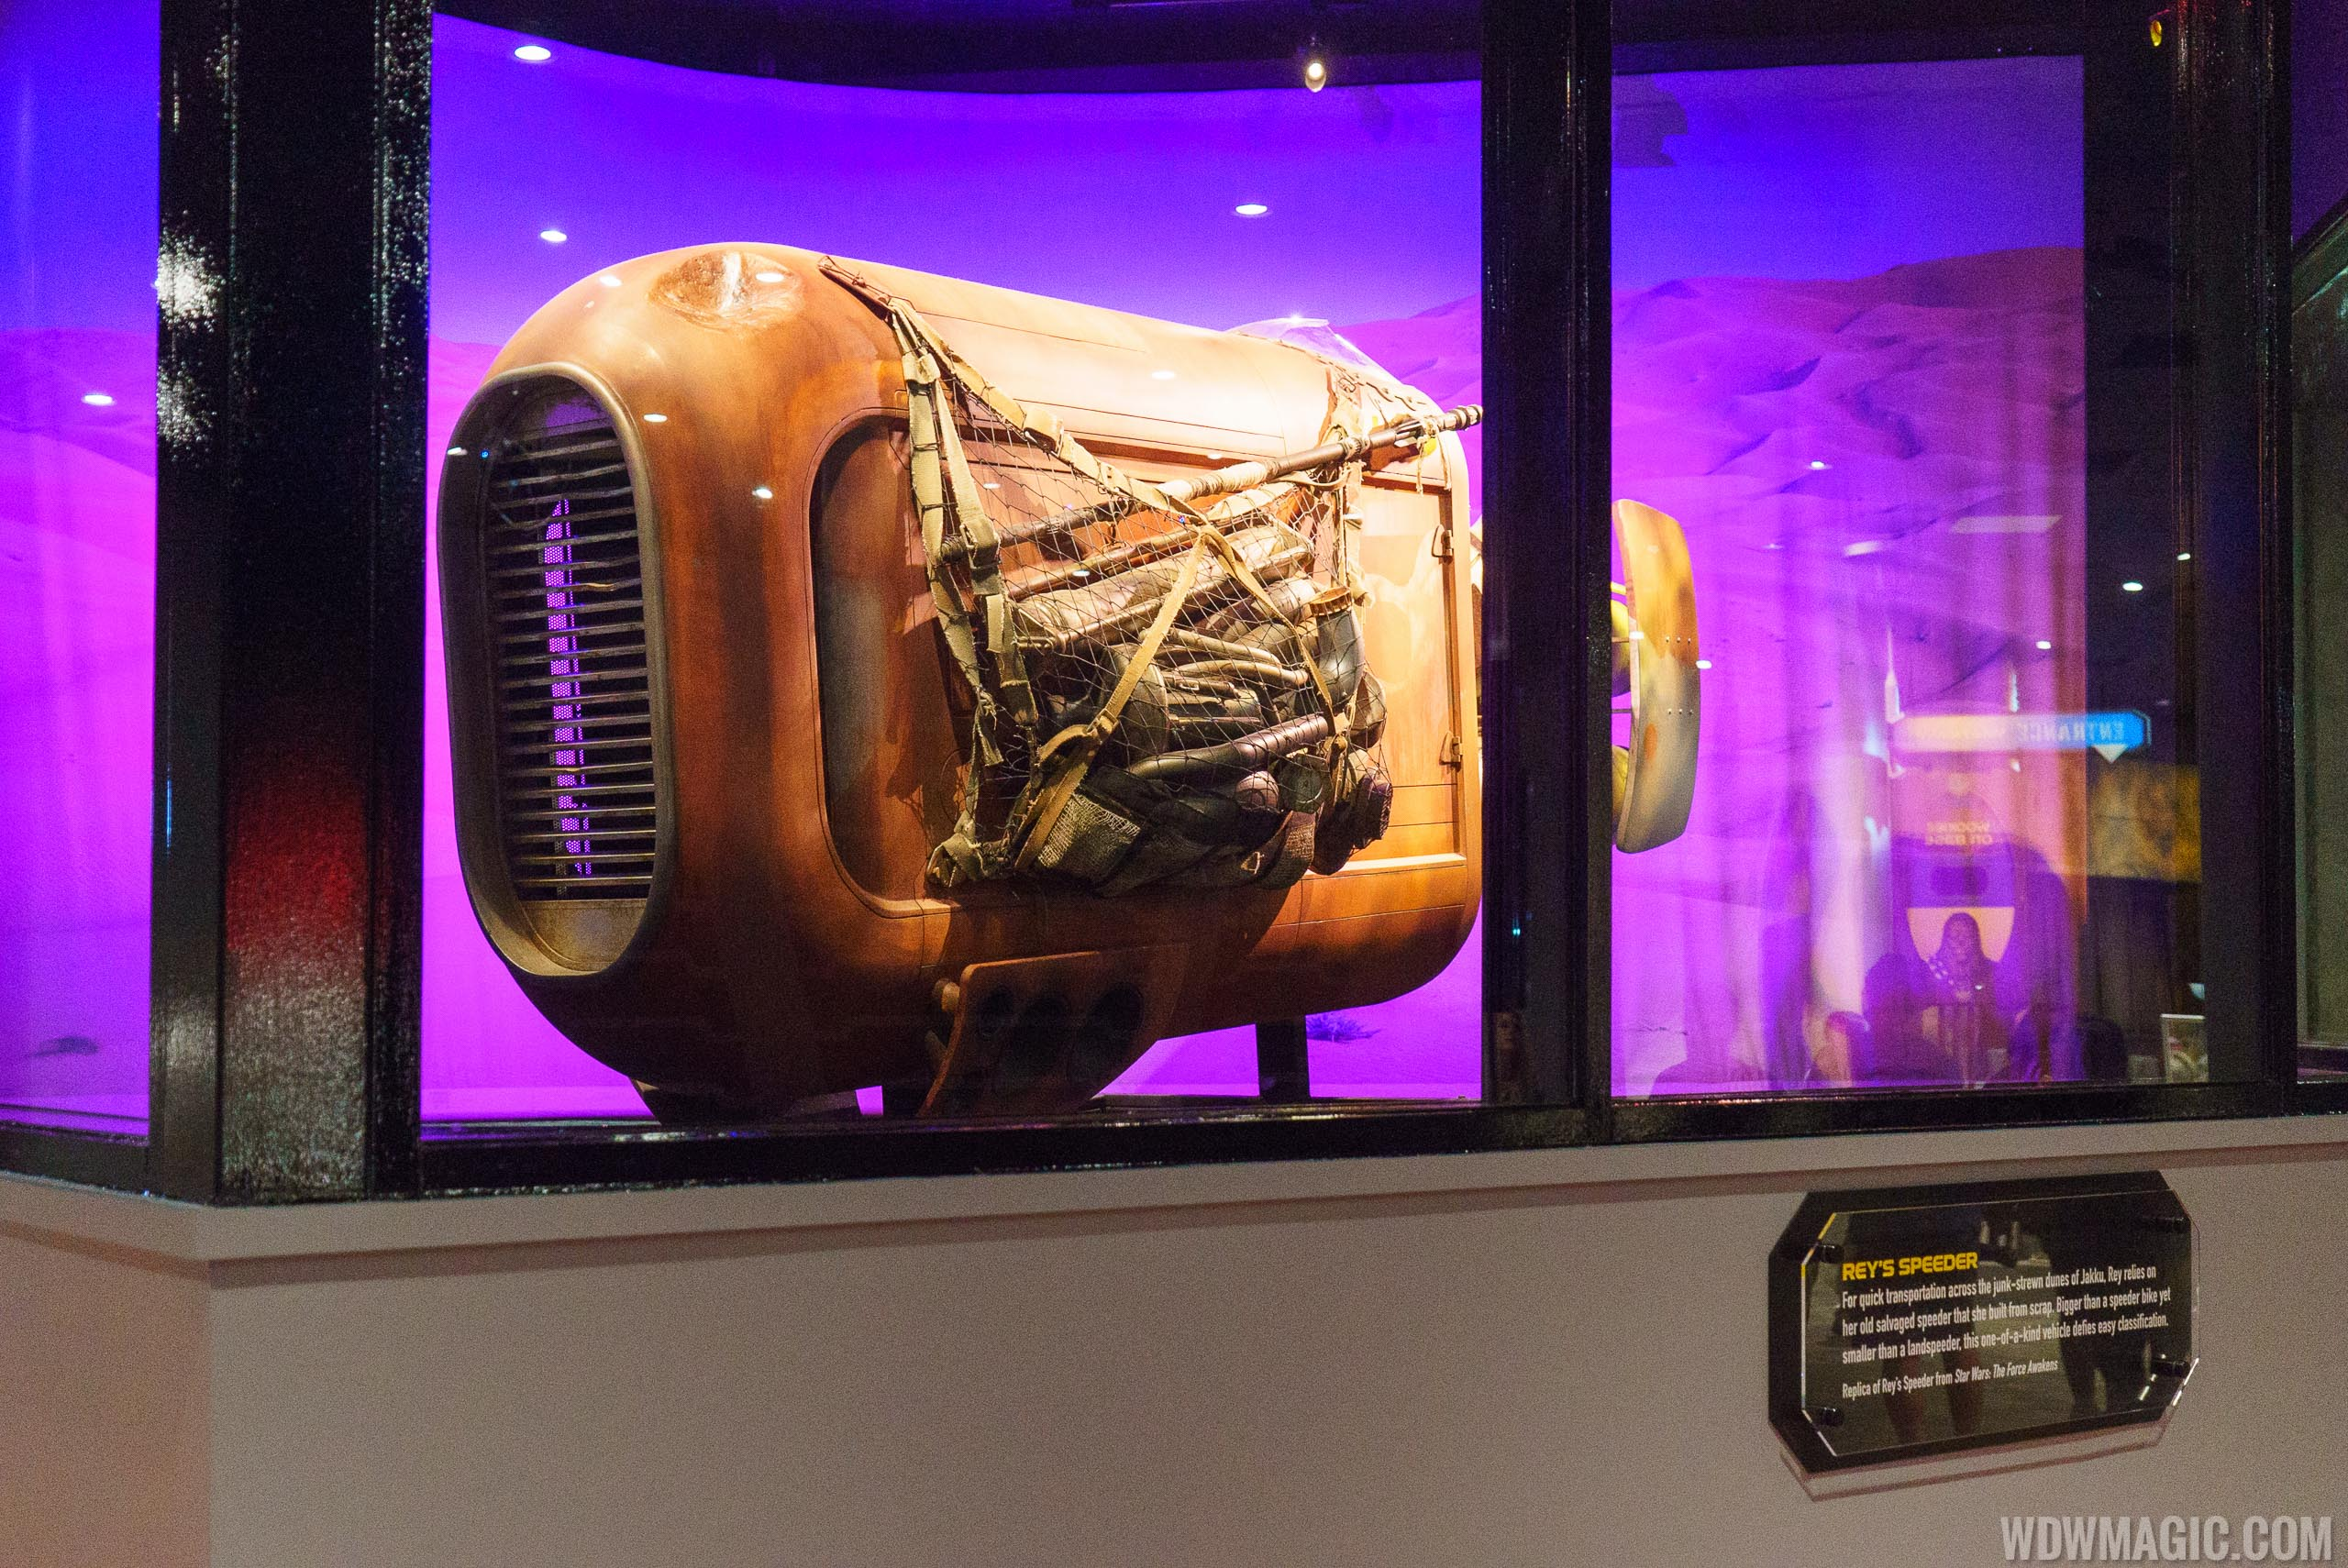 Star Wars Launch Bay - Celebration Gallery Rey's Speeder